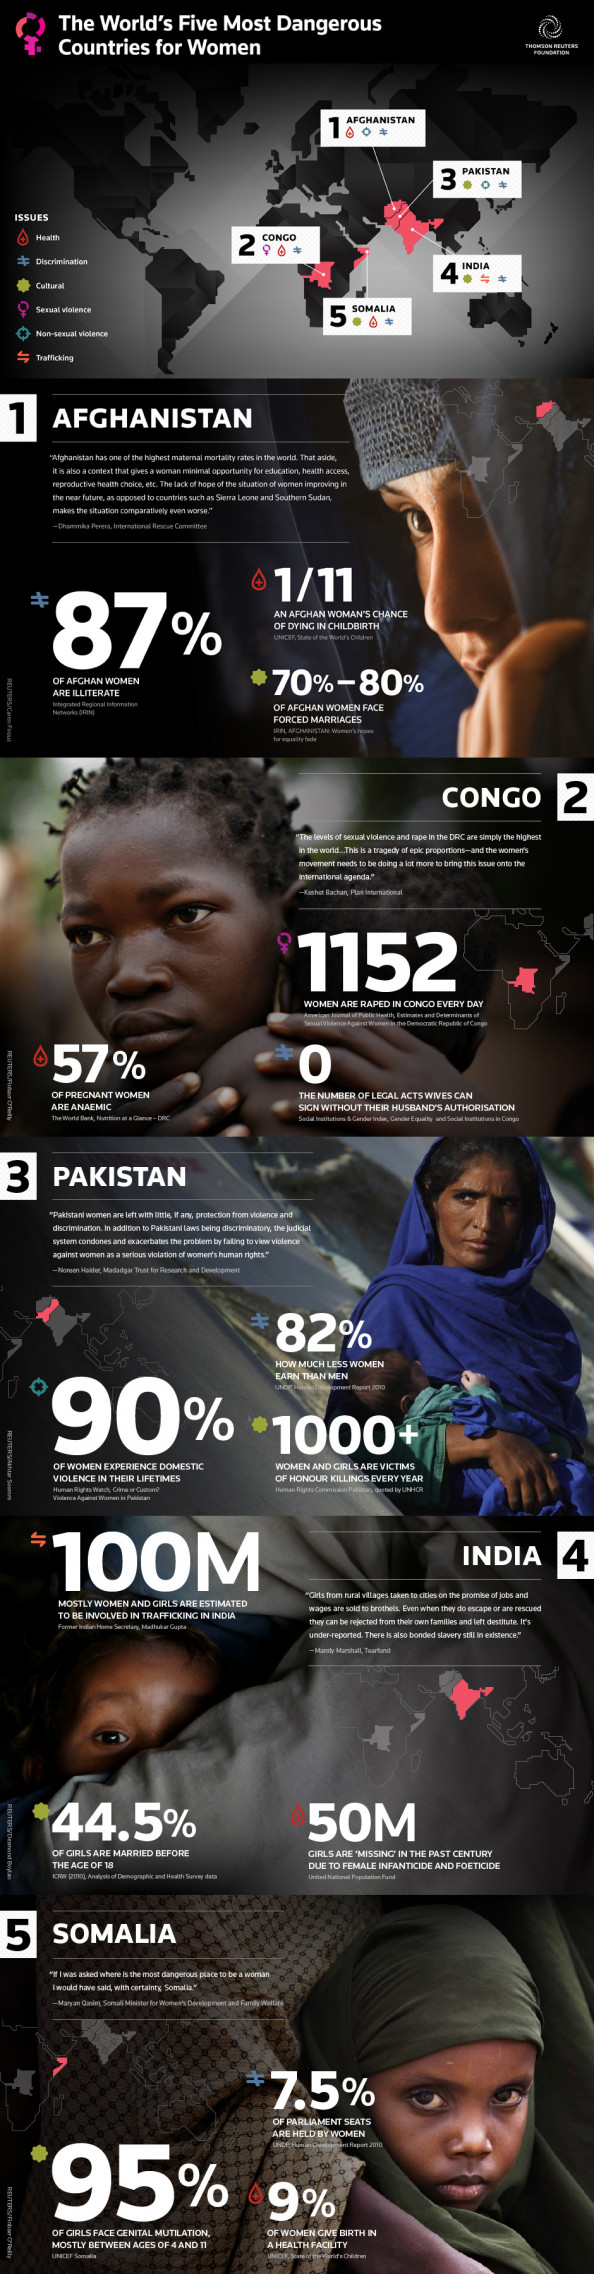 The World&#039;s Five Most Dangerous Countries For Women Infographic